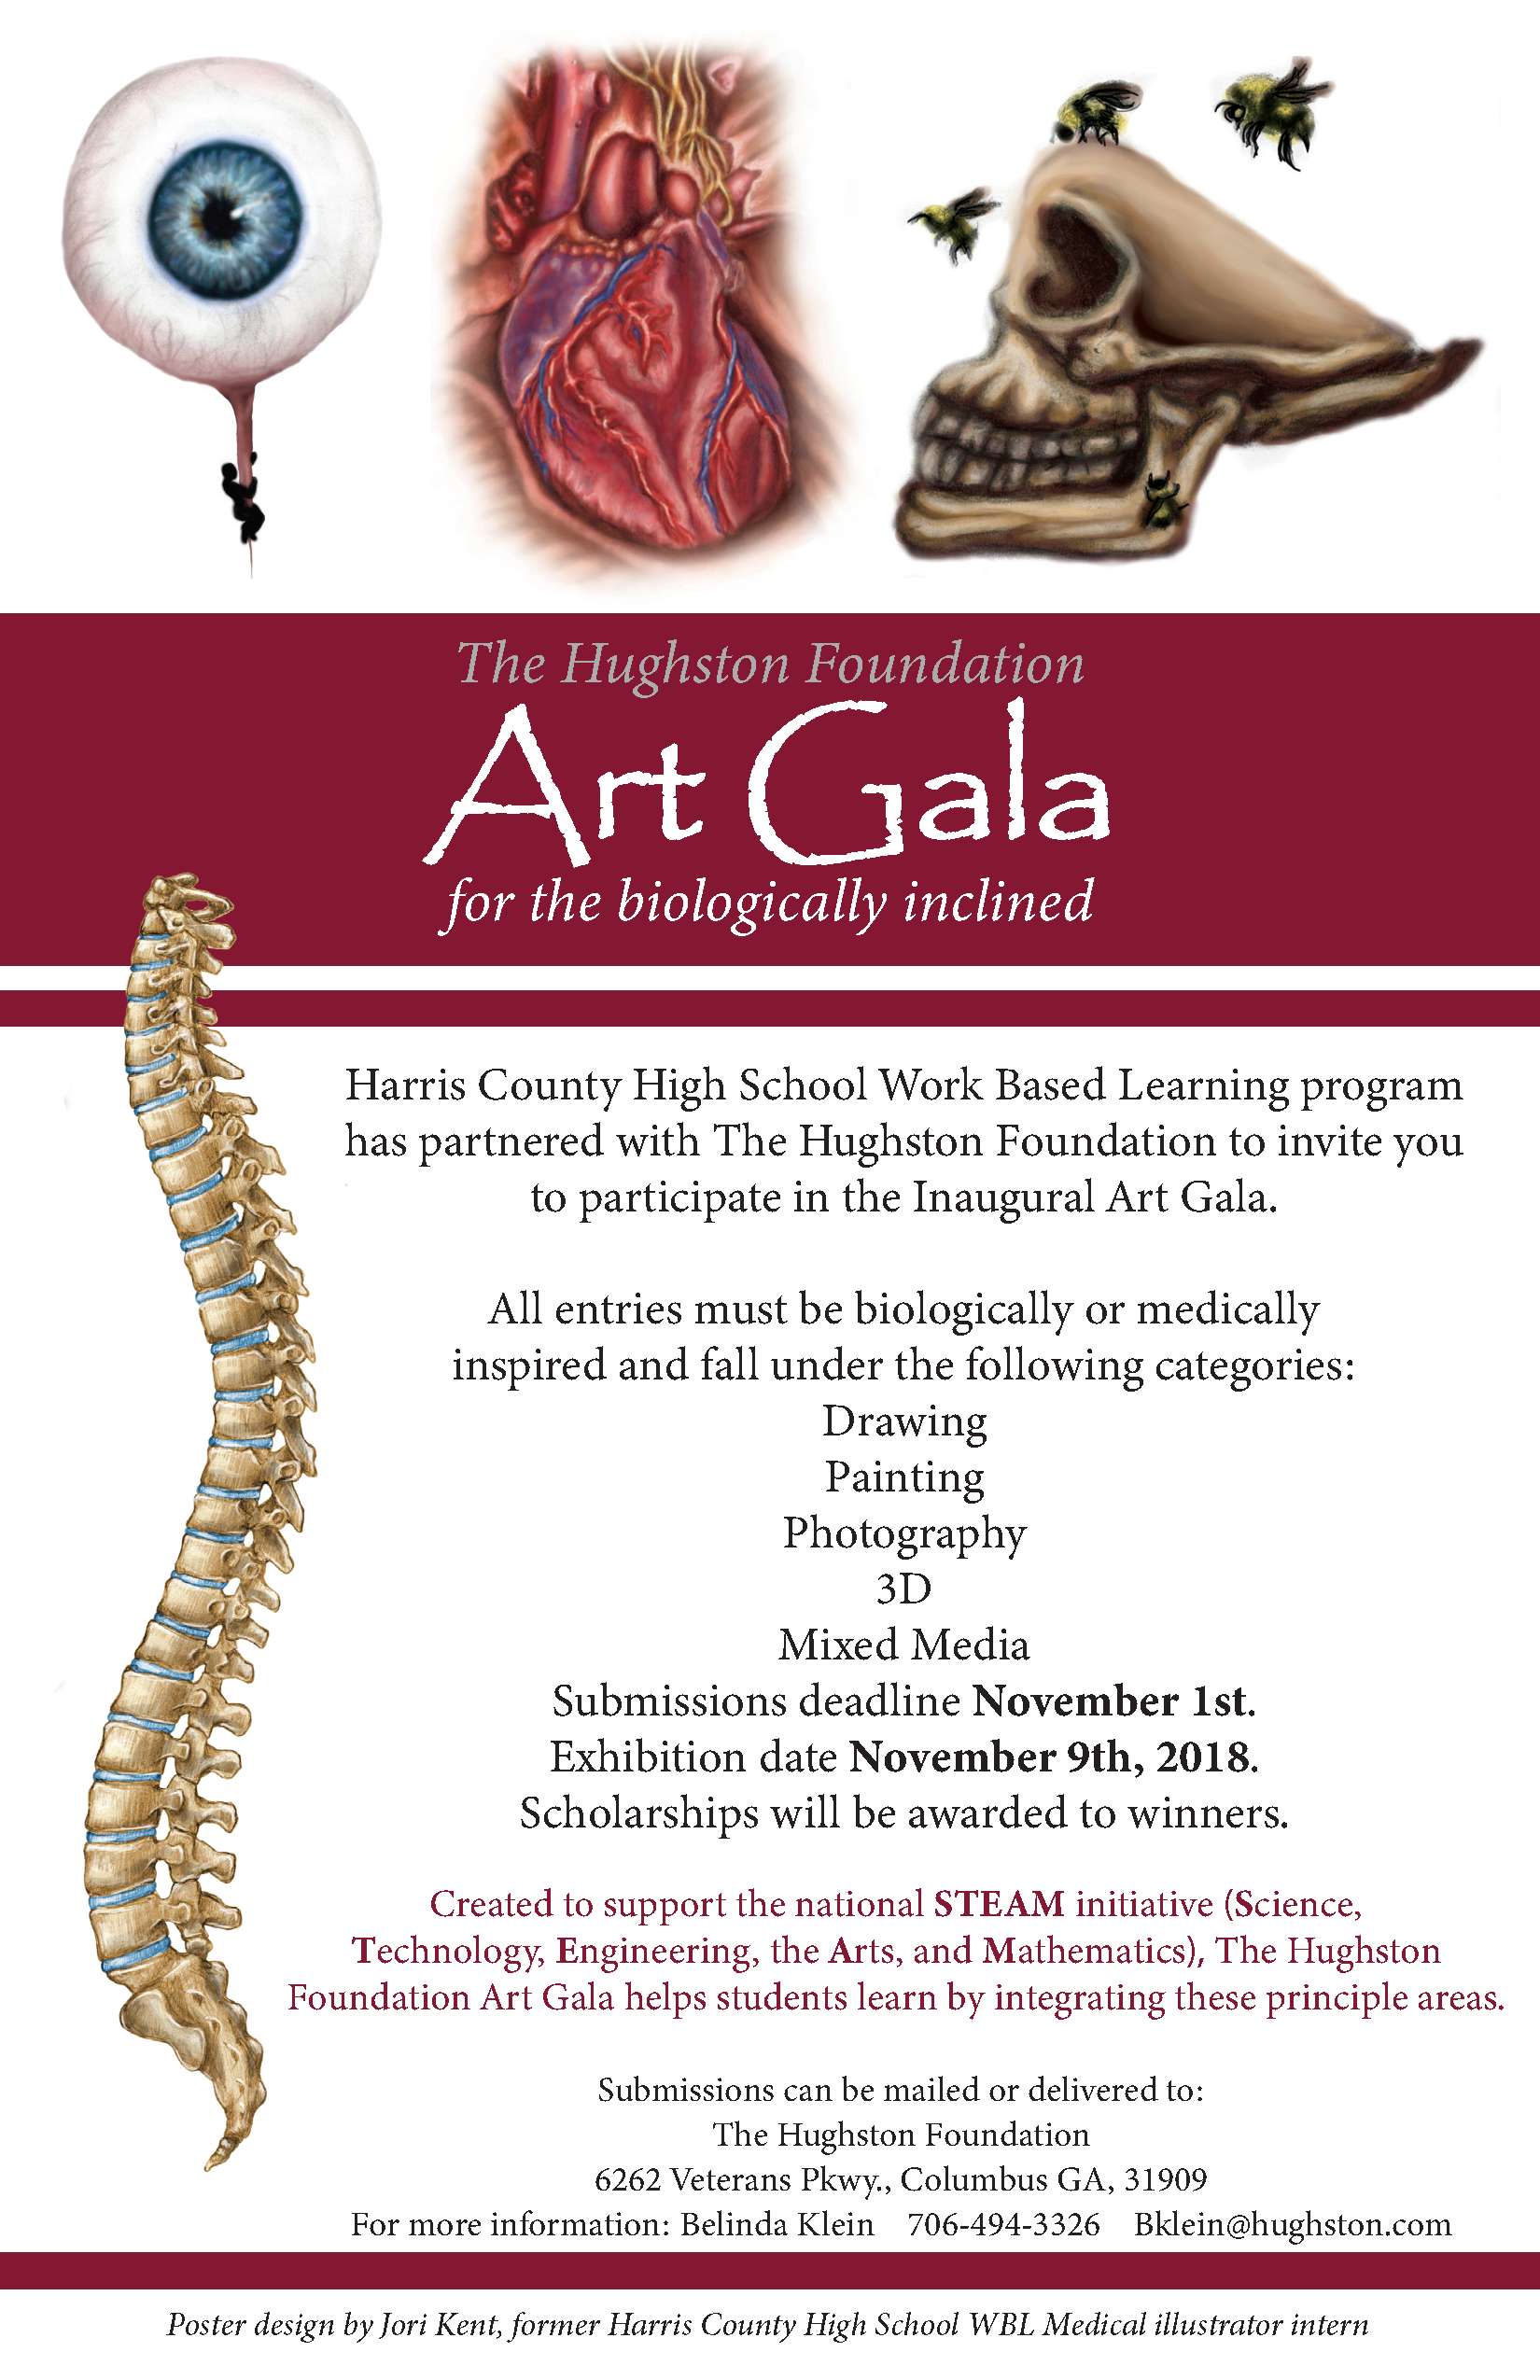 The Foundation Hughston Art Gala